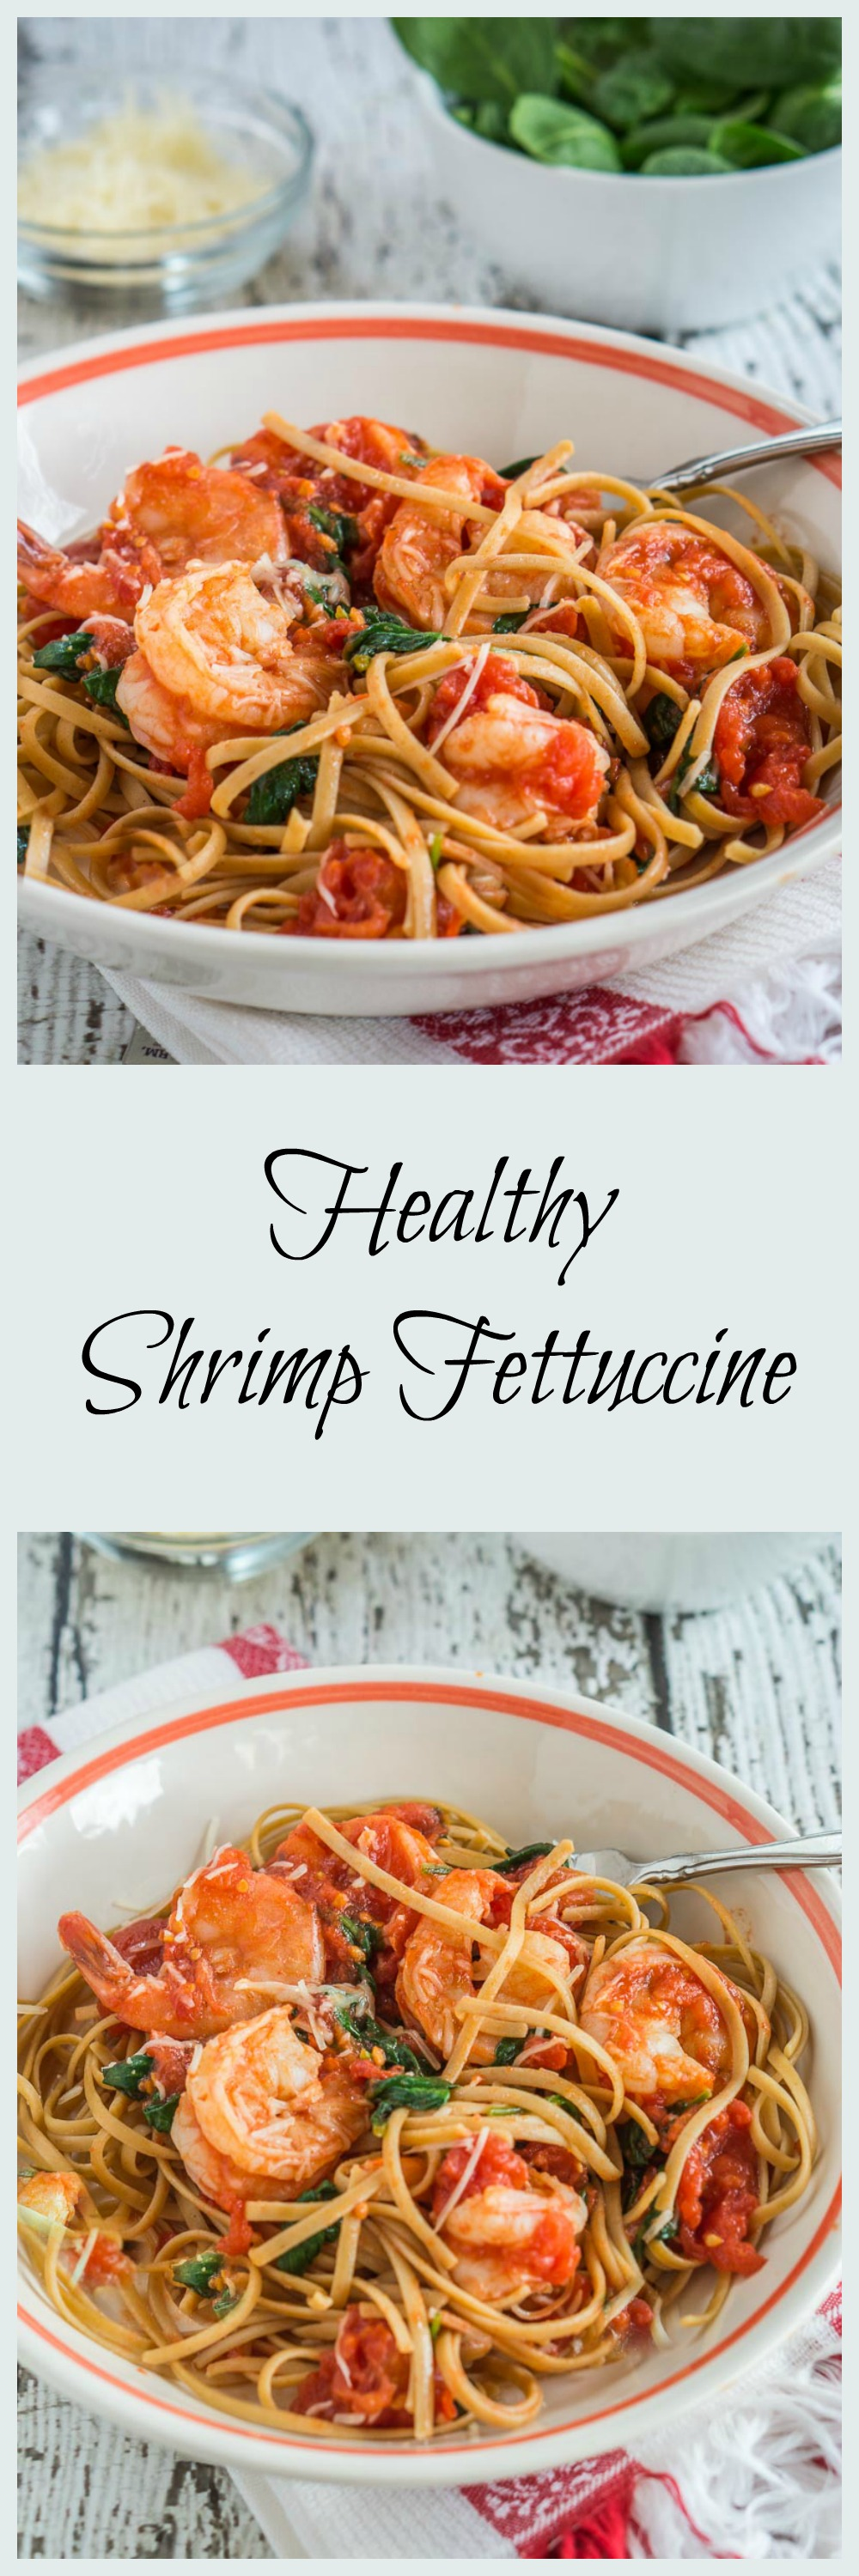 Healthy Shrimp Fettuccine can be on your table in 10 minutes. This recipe proves that you can put a dish on your table that is quick, healthy and delicious. | HostessAtHeart.com #HealthyFood #HeartHealthyRecipe #Pasta